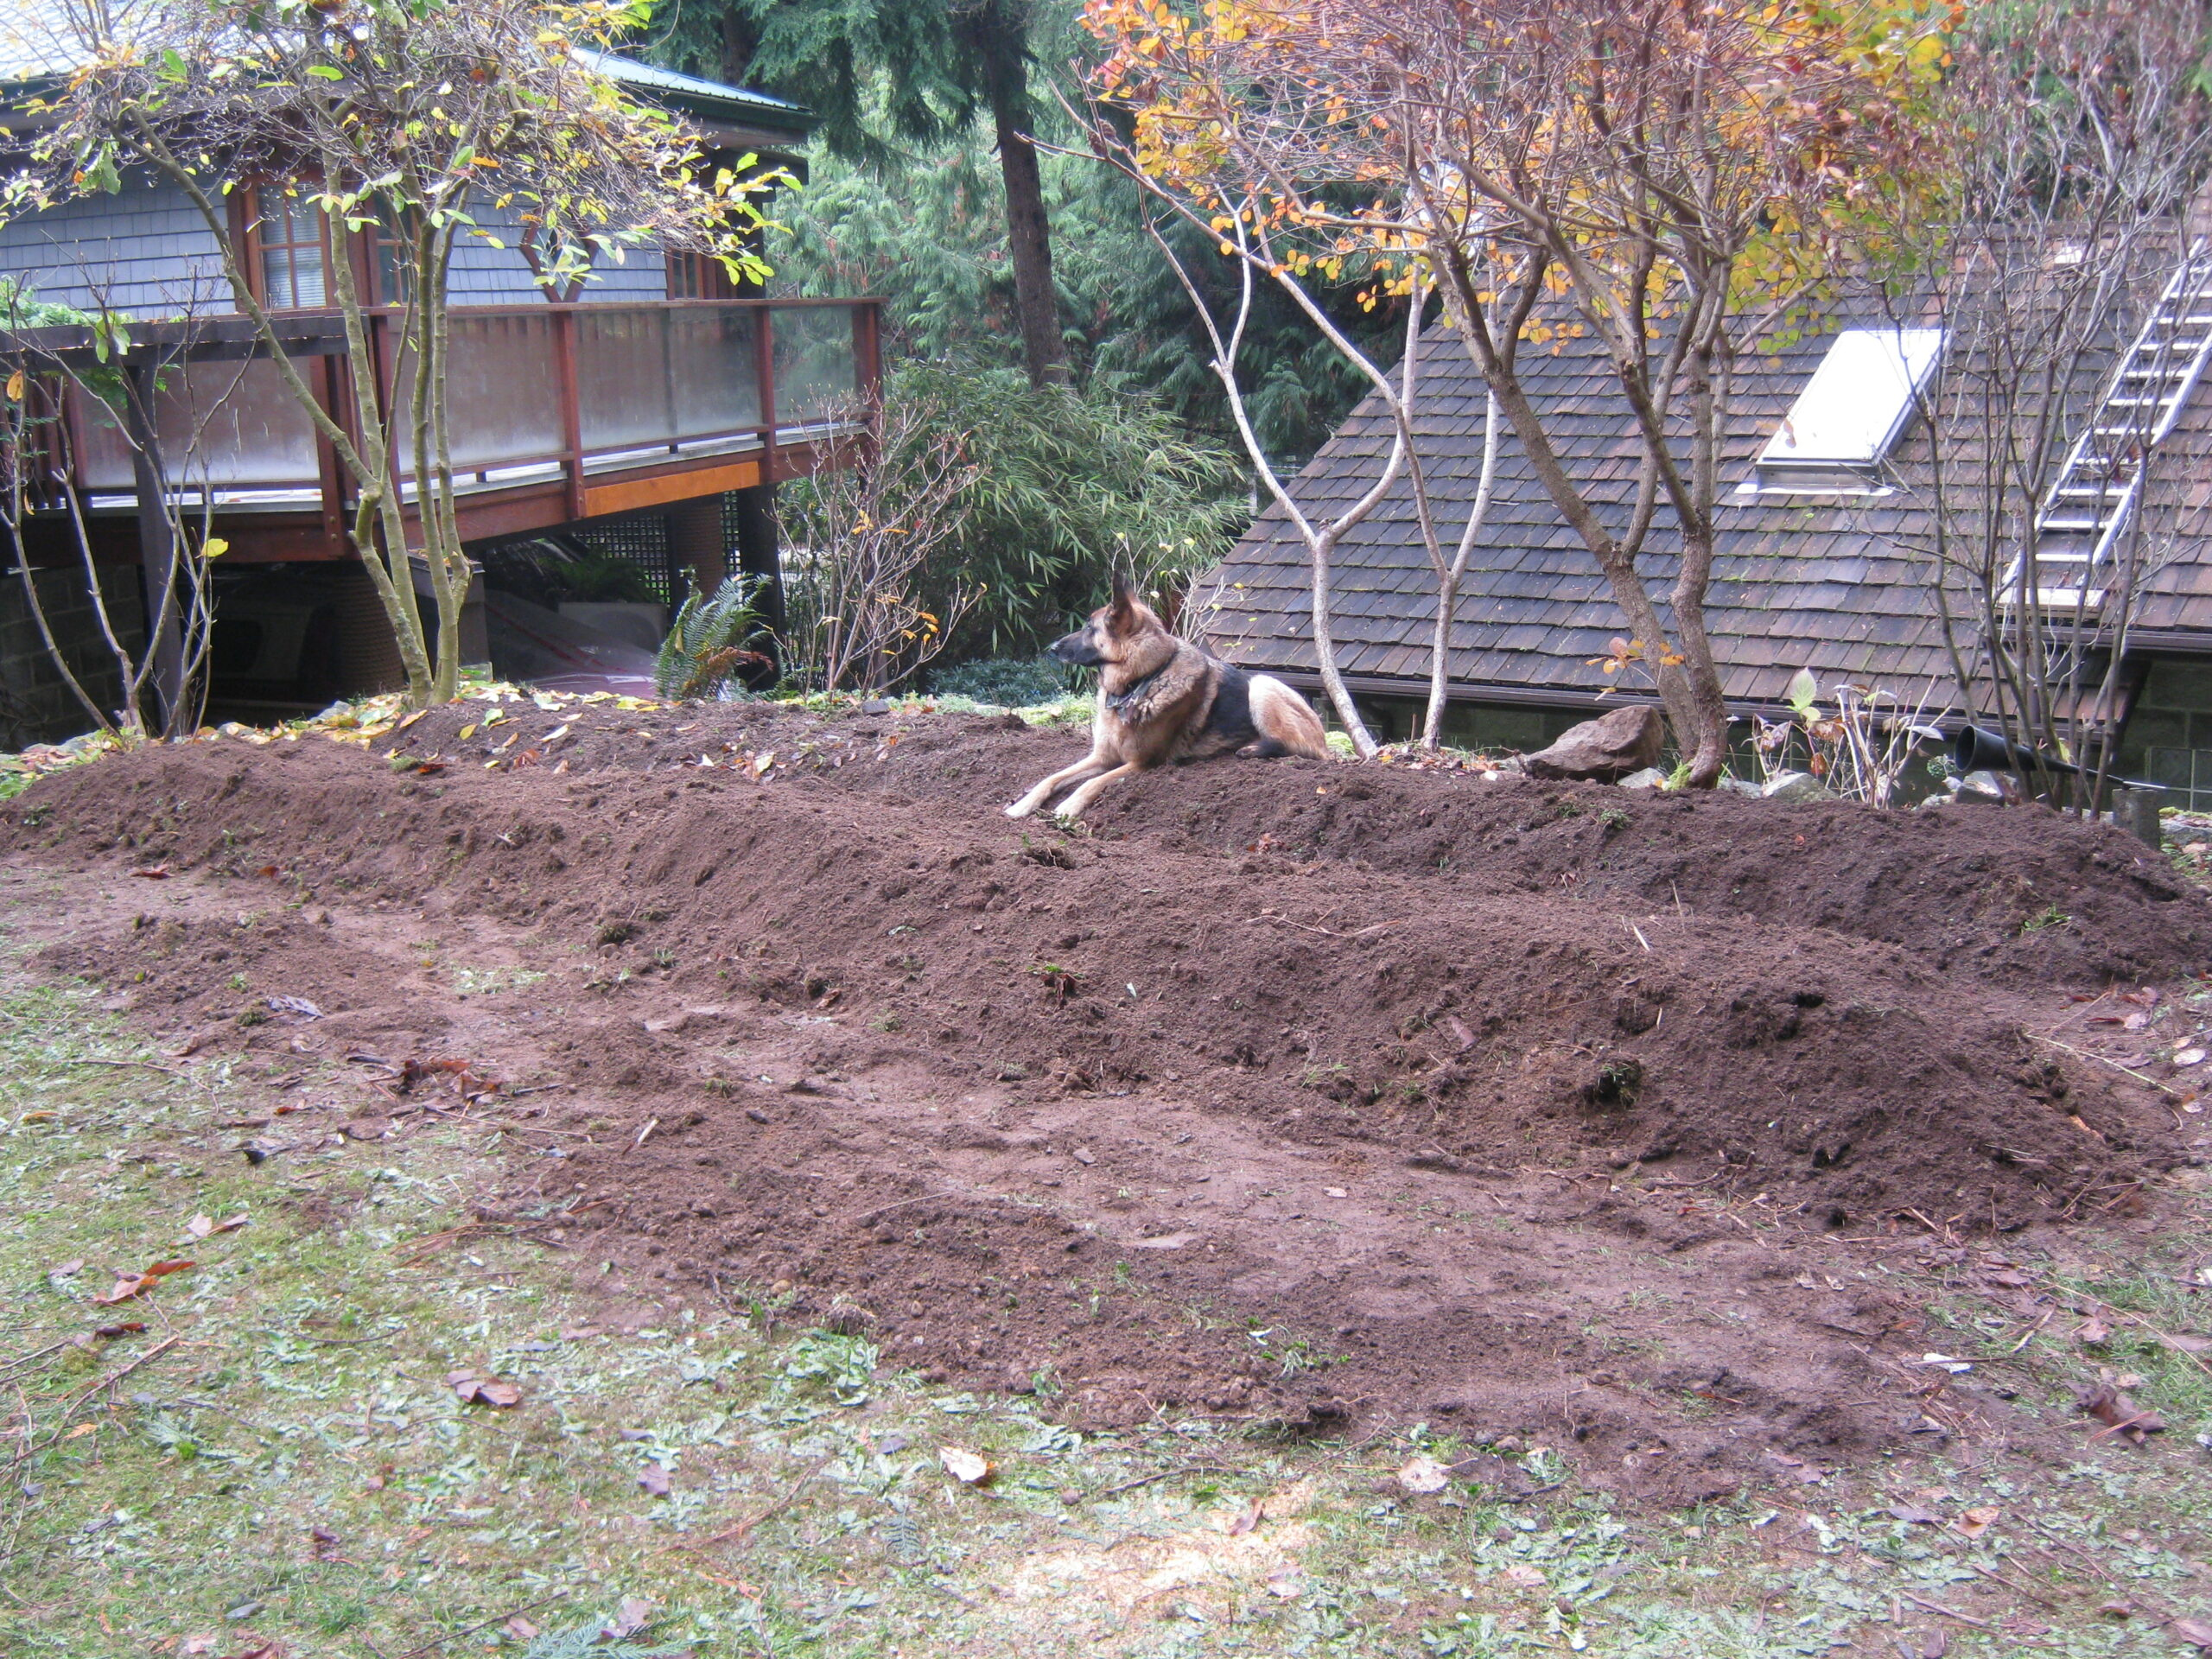 dog in the permaculture garden